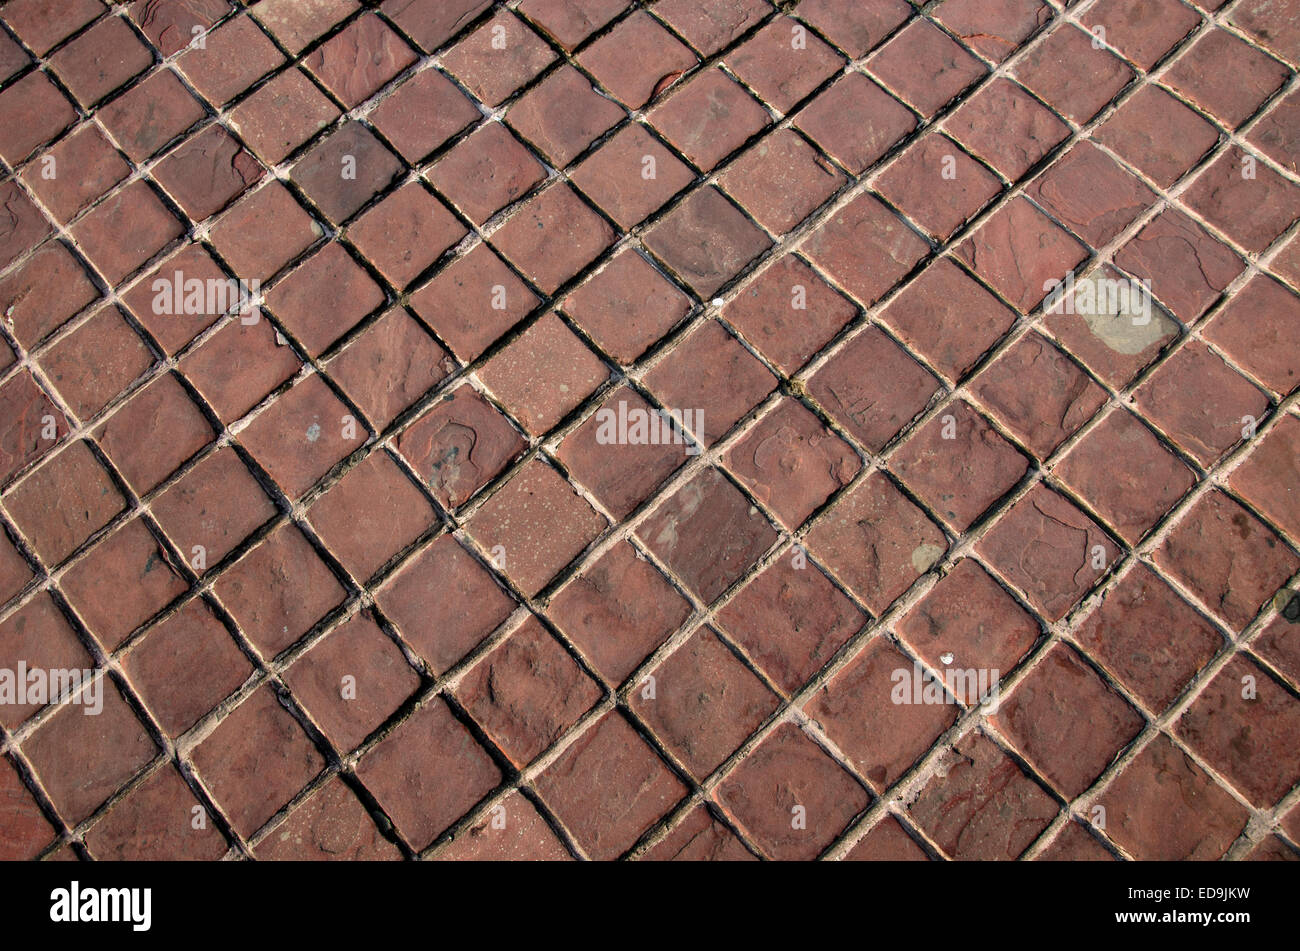 old bricks pavement background and texture - Stock Image